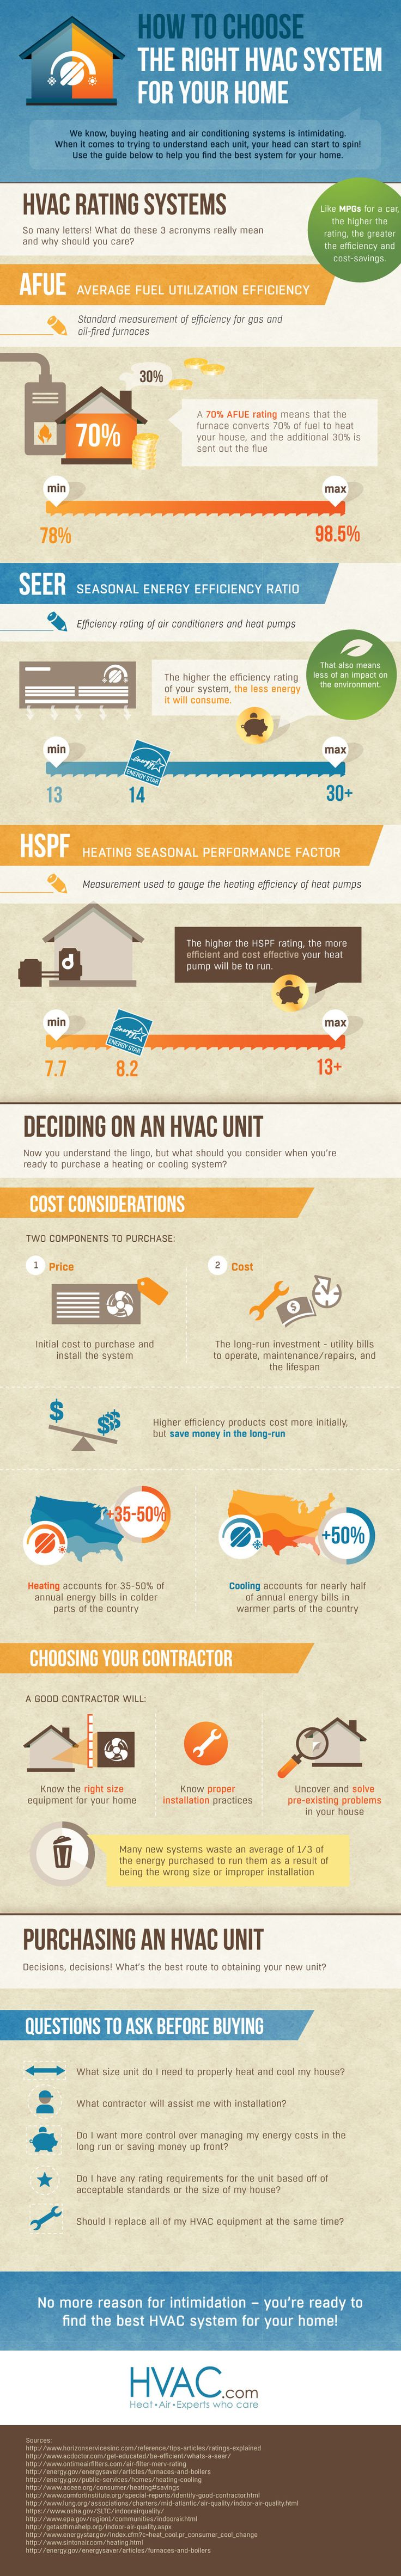 Average cost of new furnace and ac for home - Average Cost Of New Furnace And Ac For Home 41